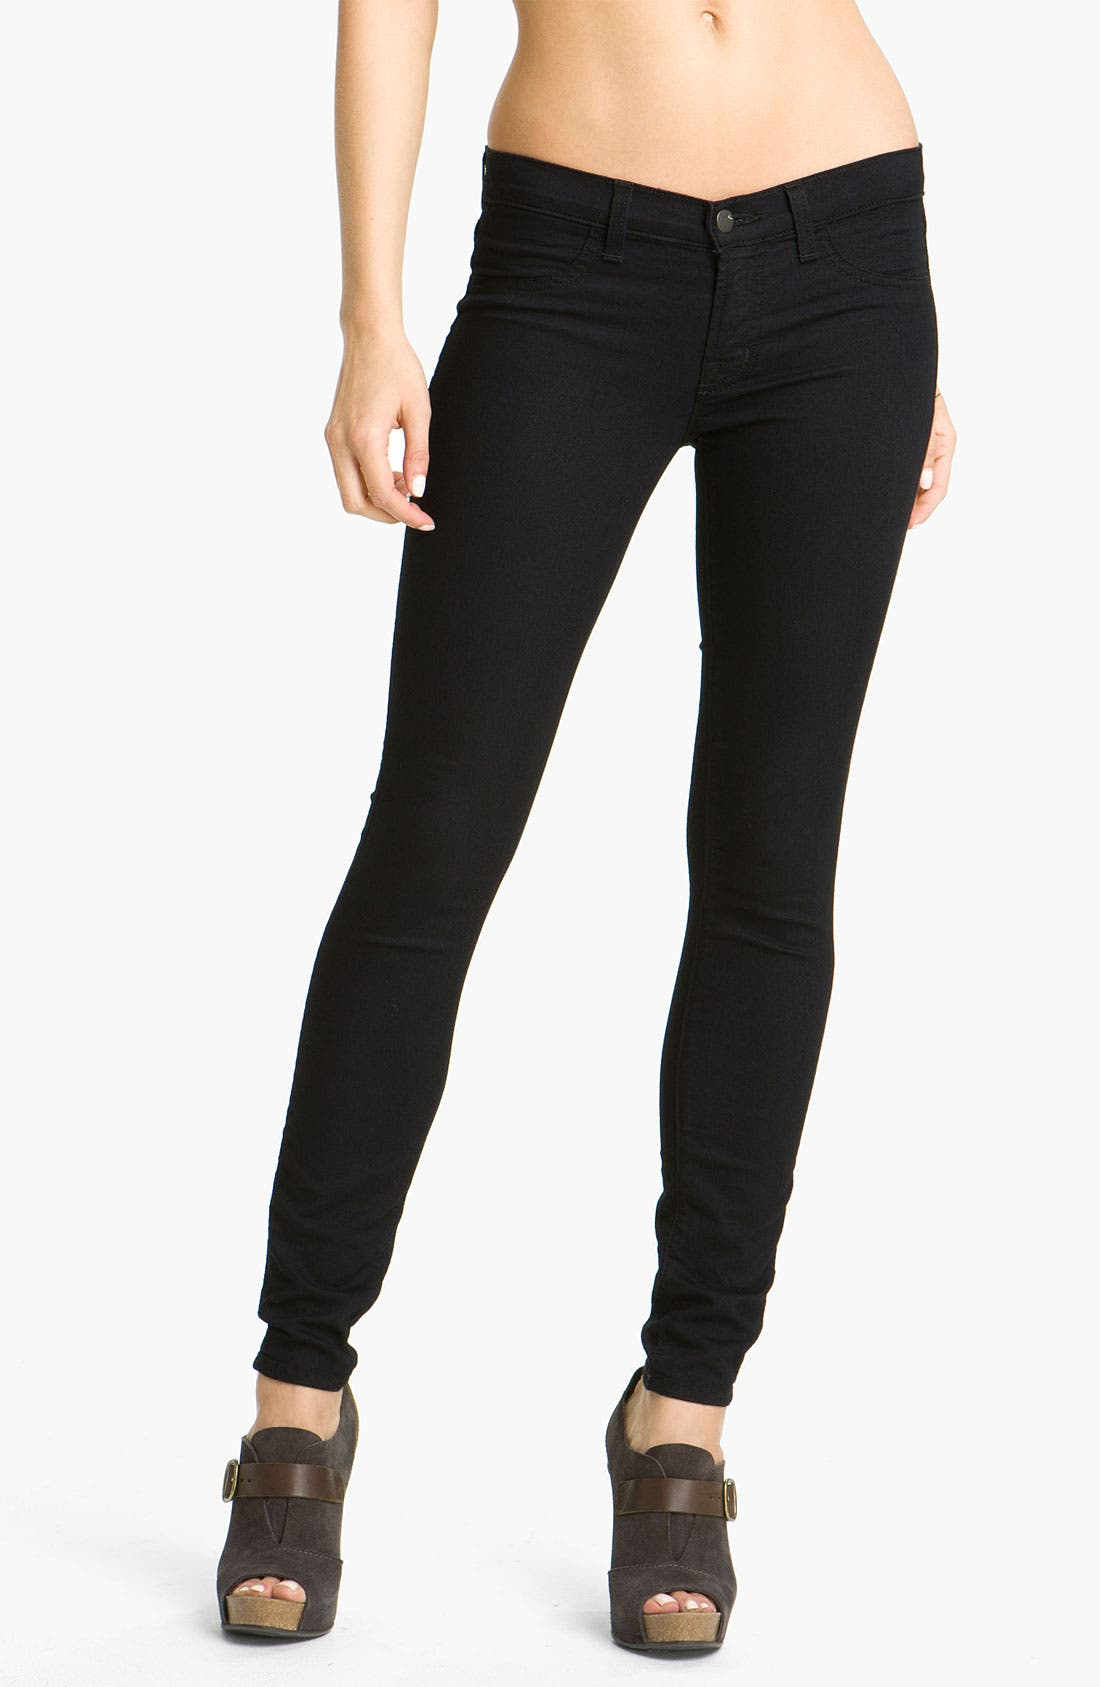 Alternate Image 1 Selected - J Brand 'Legging' Stretch Jeans (Pitch Wash)